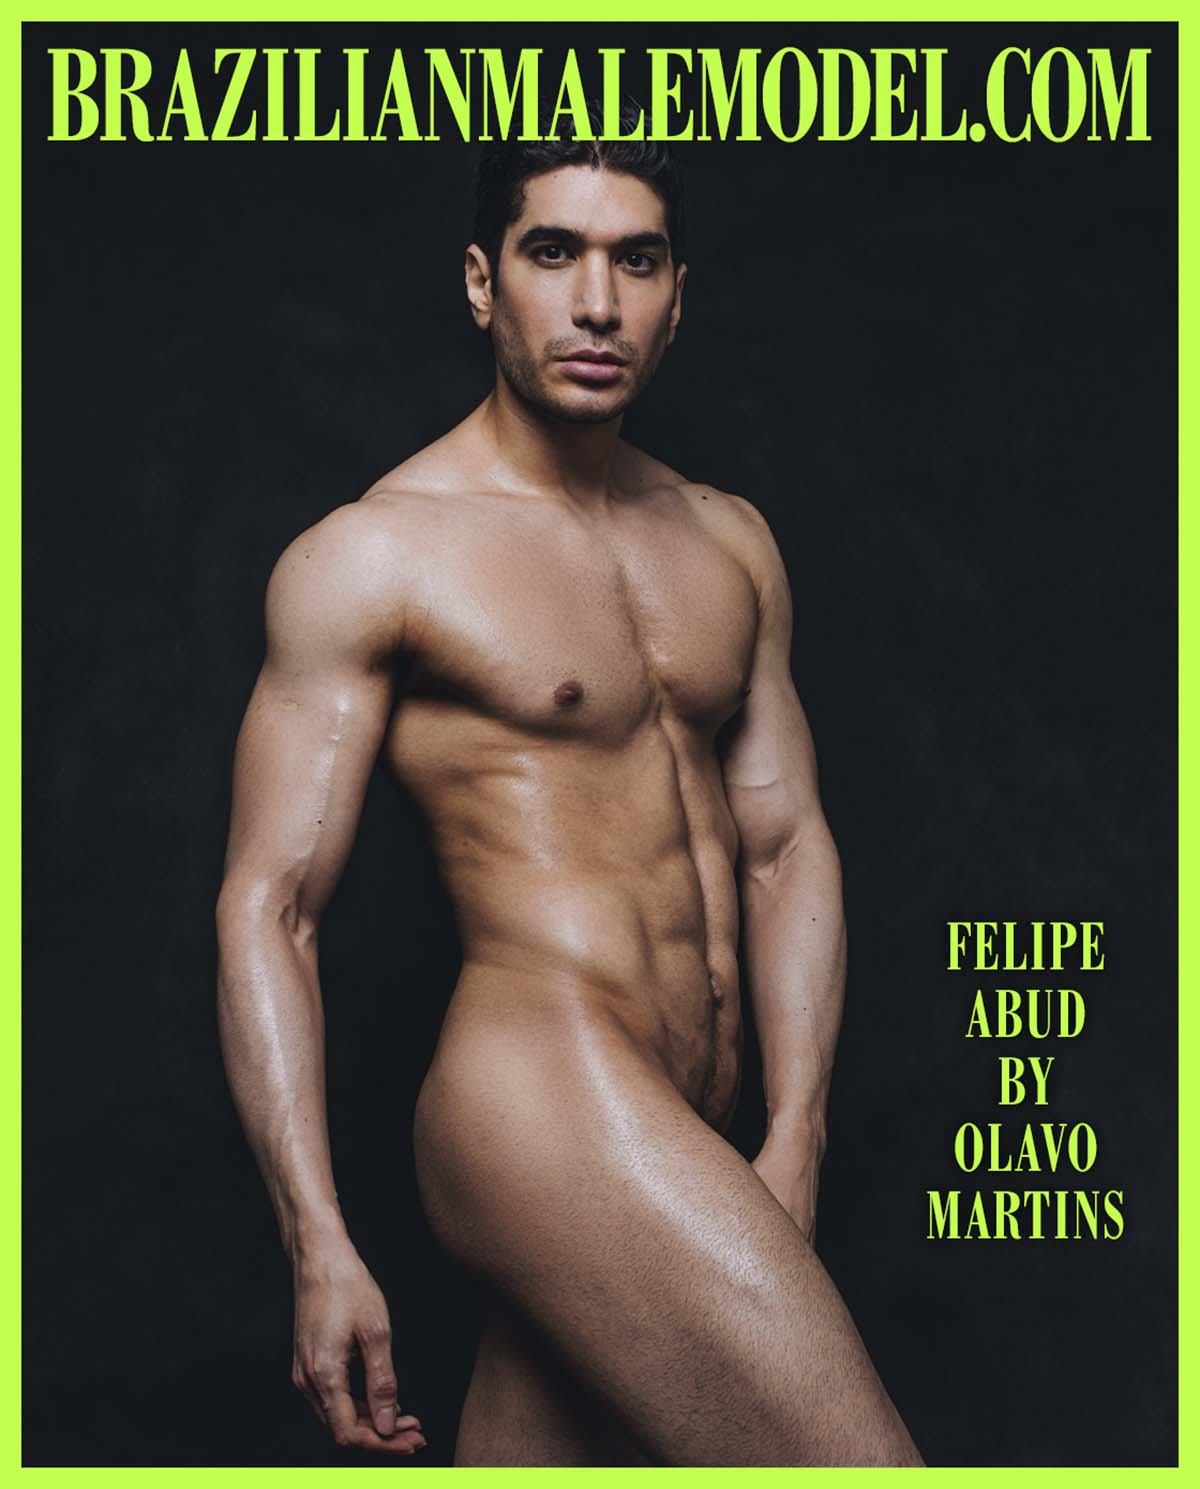 Felipe Abud X Olavo Martins X Brazilian Male Model X YUP MAGAZINE